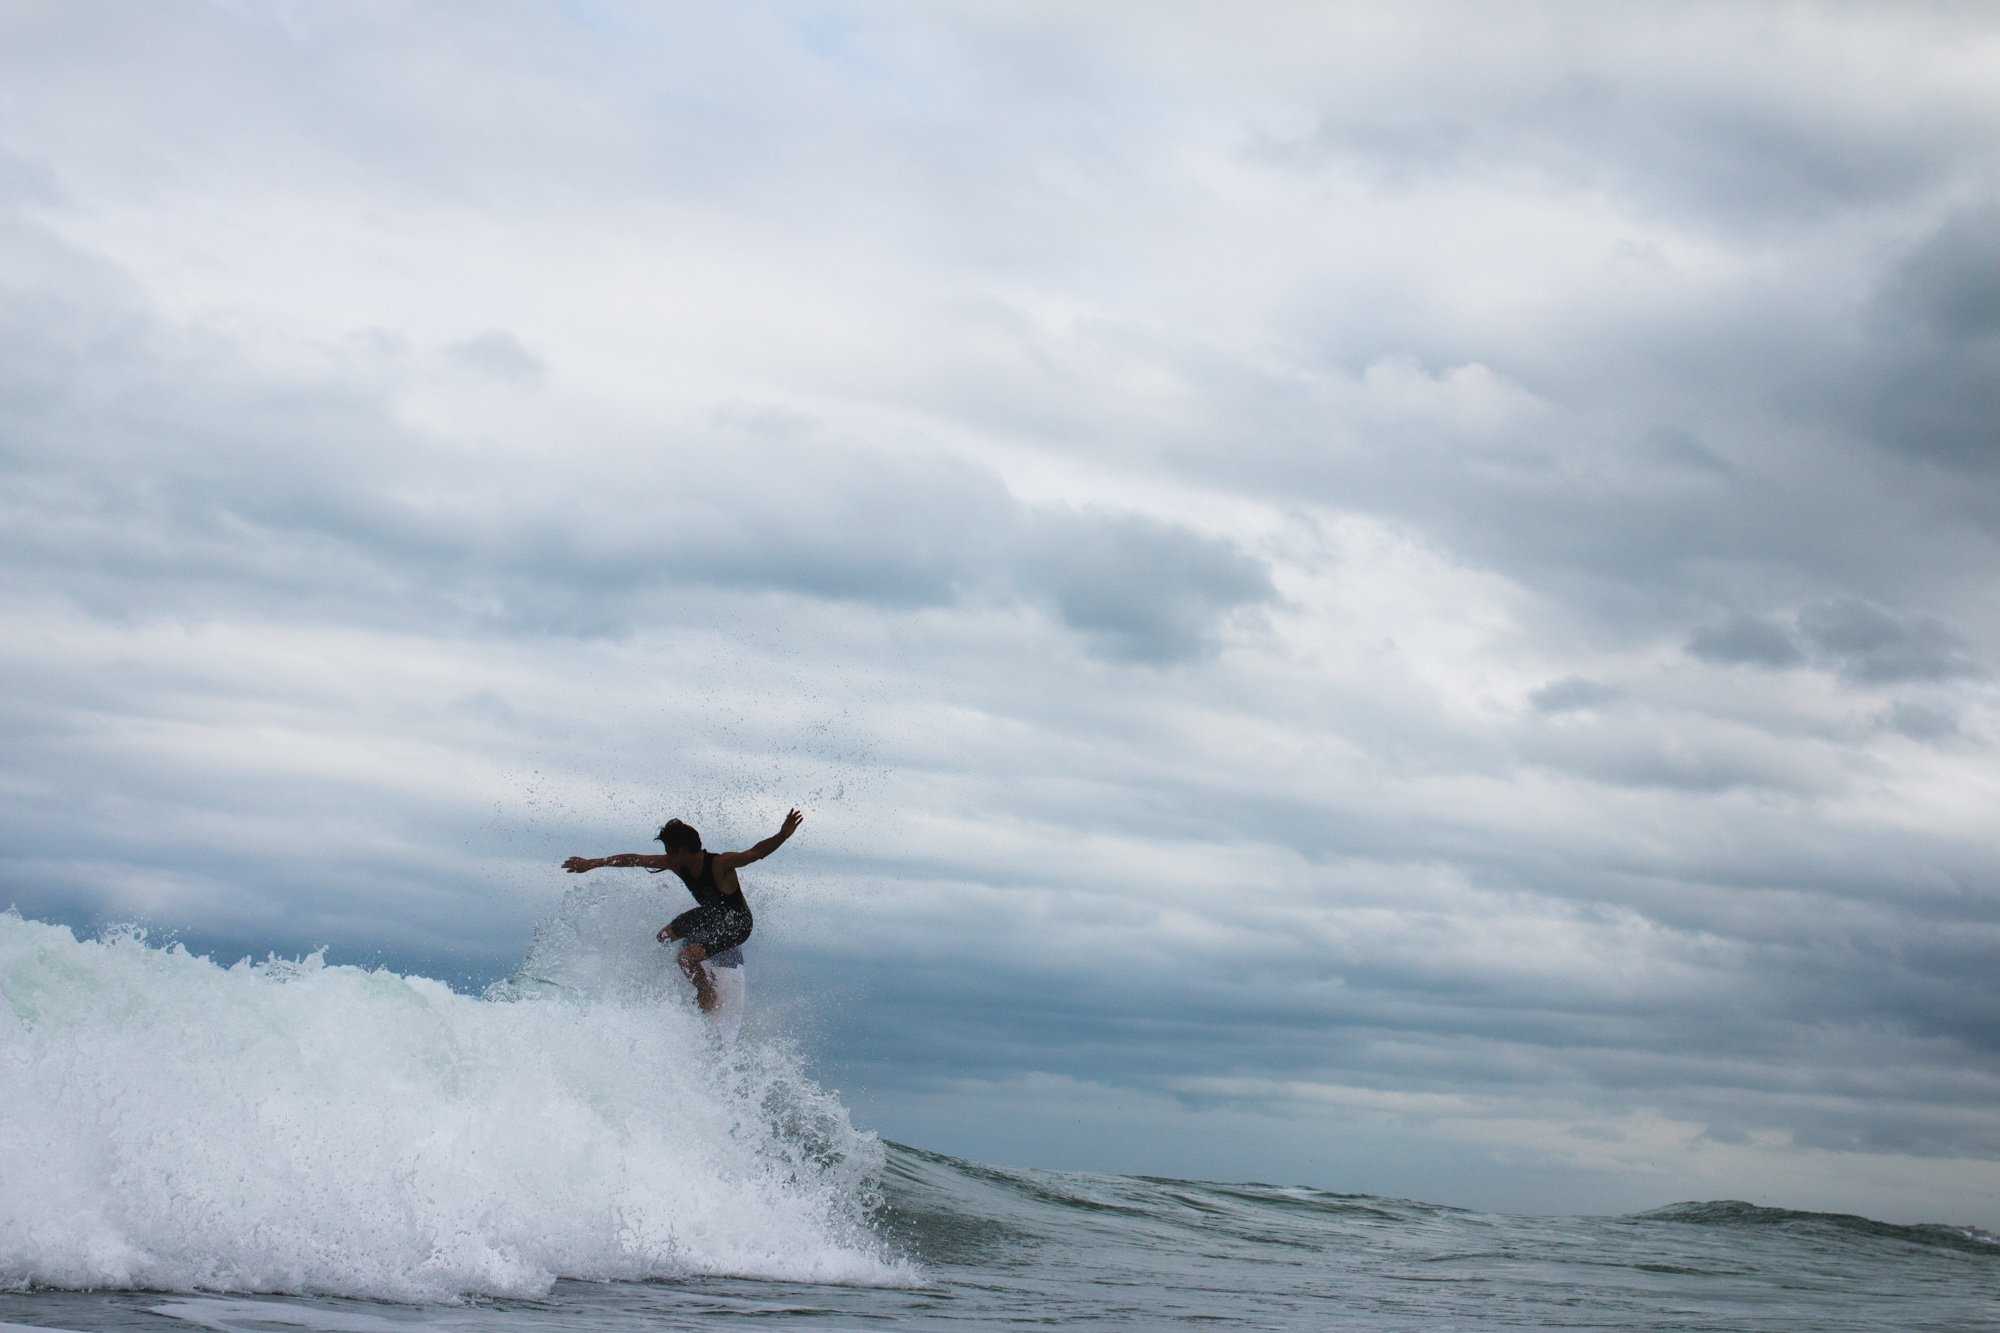 Daniel Glenn in New Smyrna Beach, Photo Nathaniel Harrington